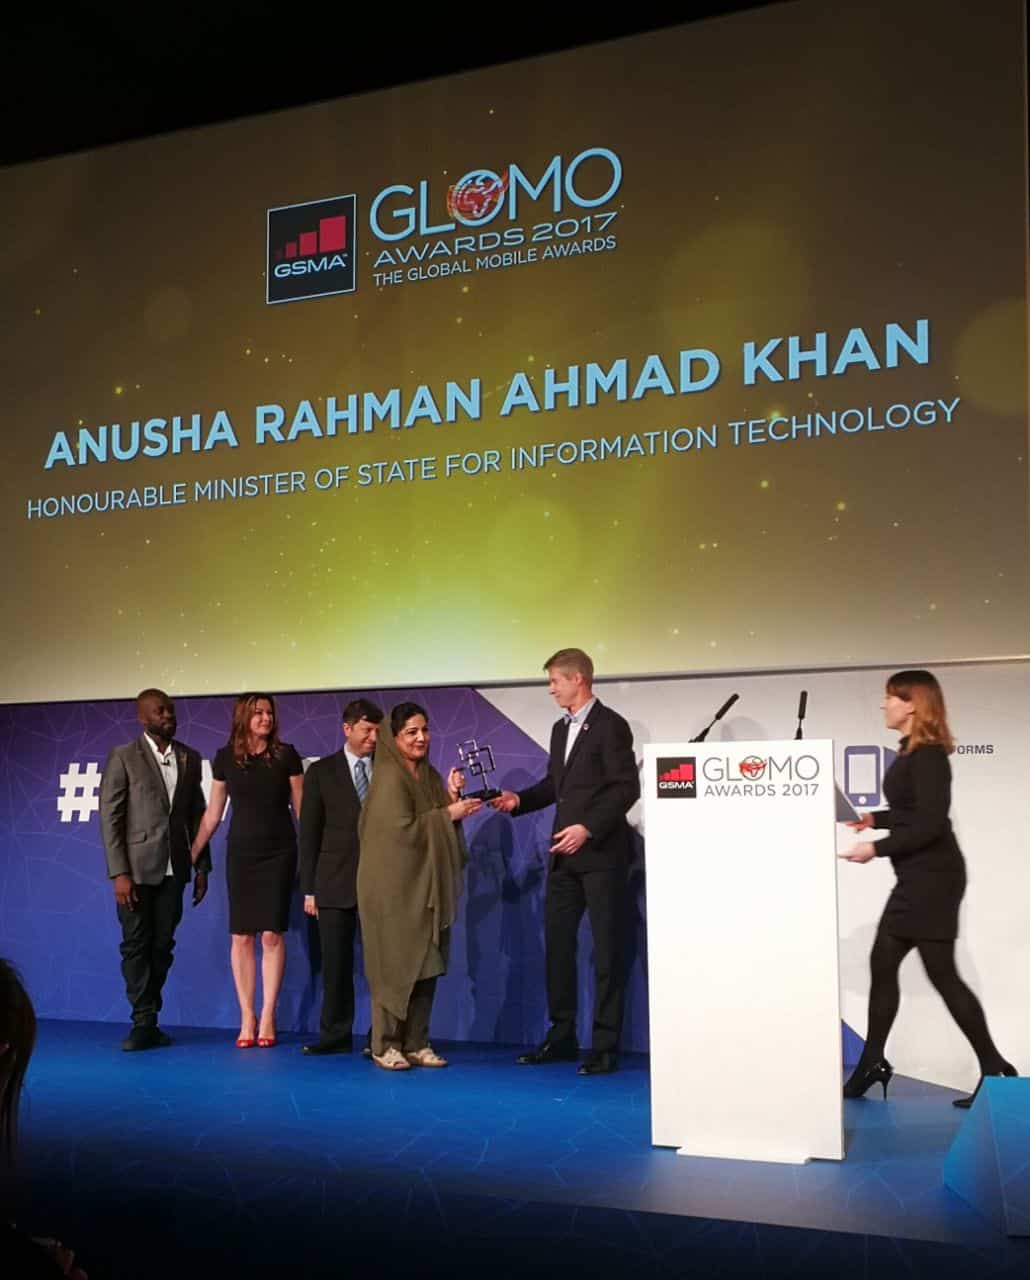 Anusha Rahman receiving award at GLOMO